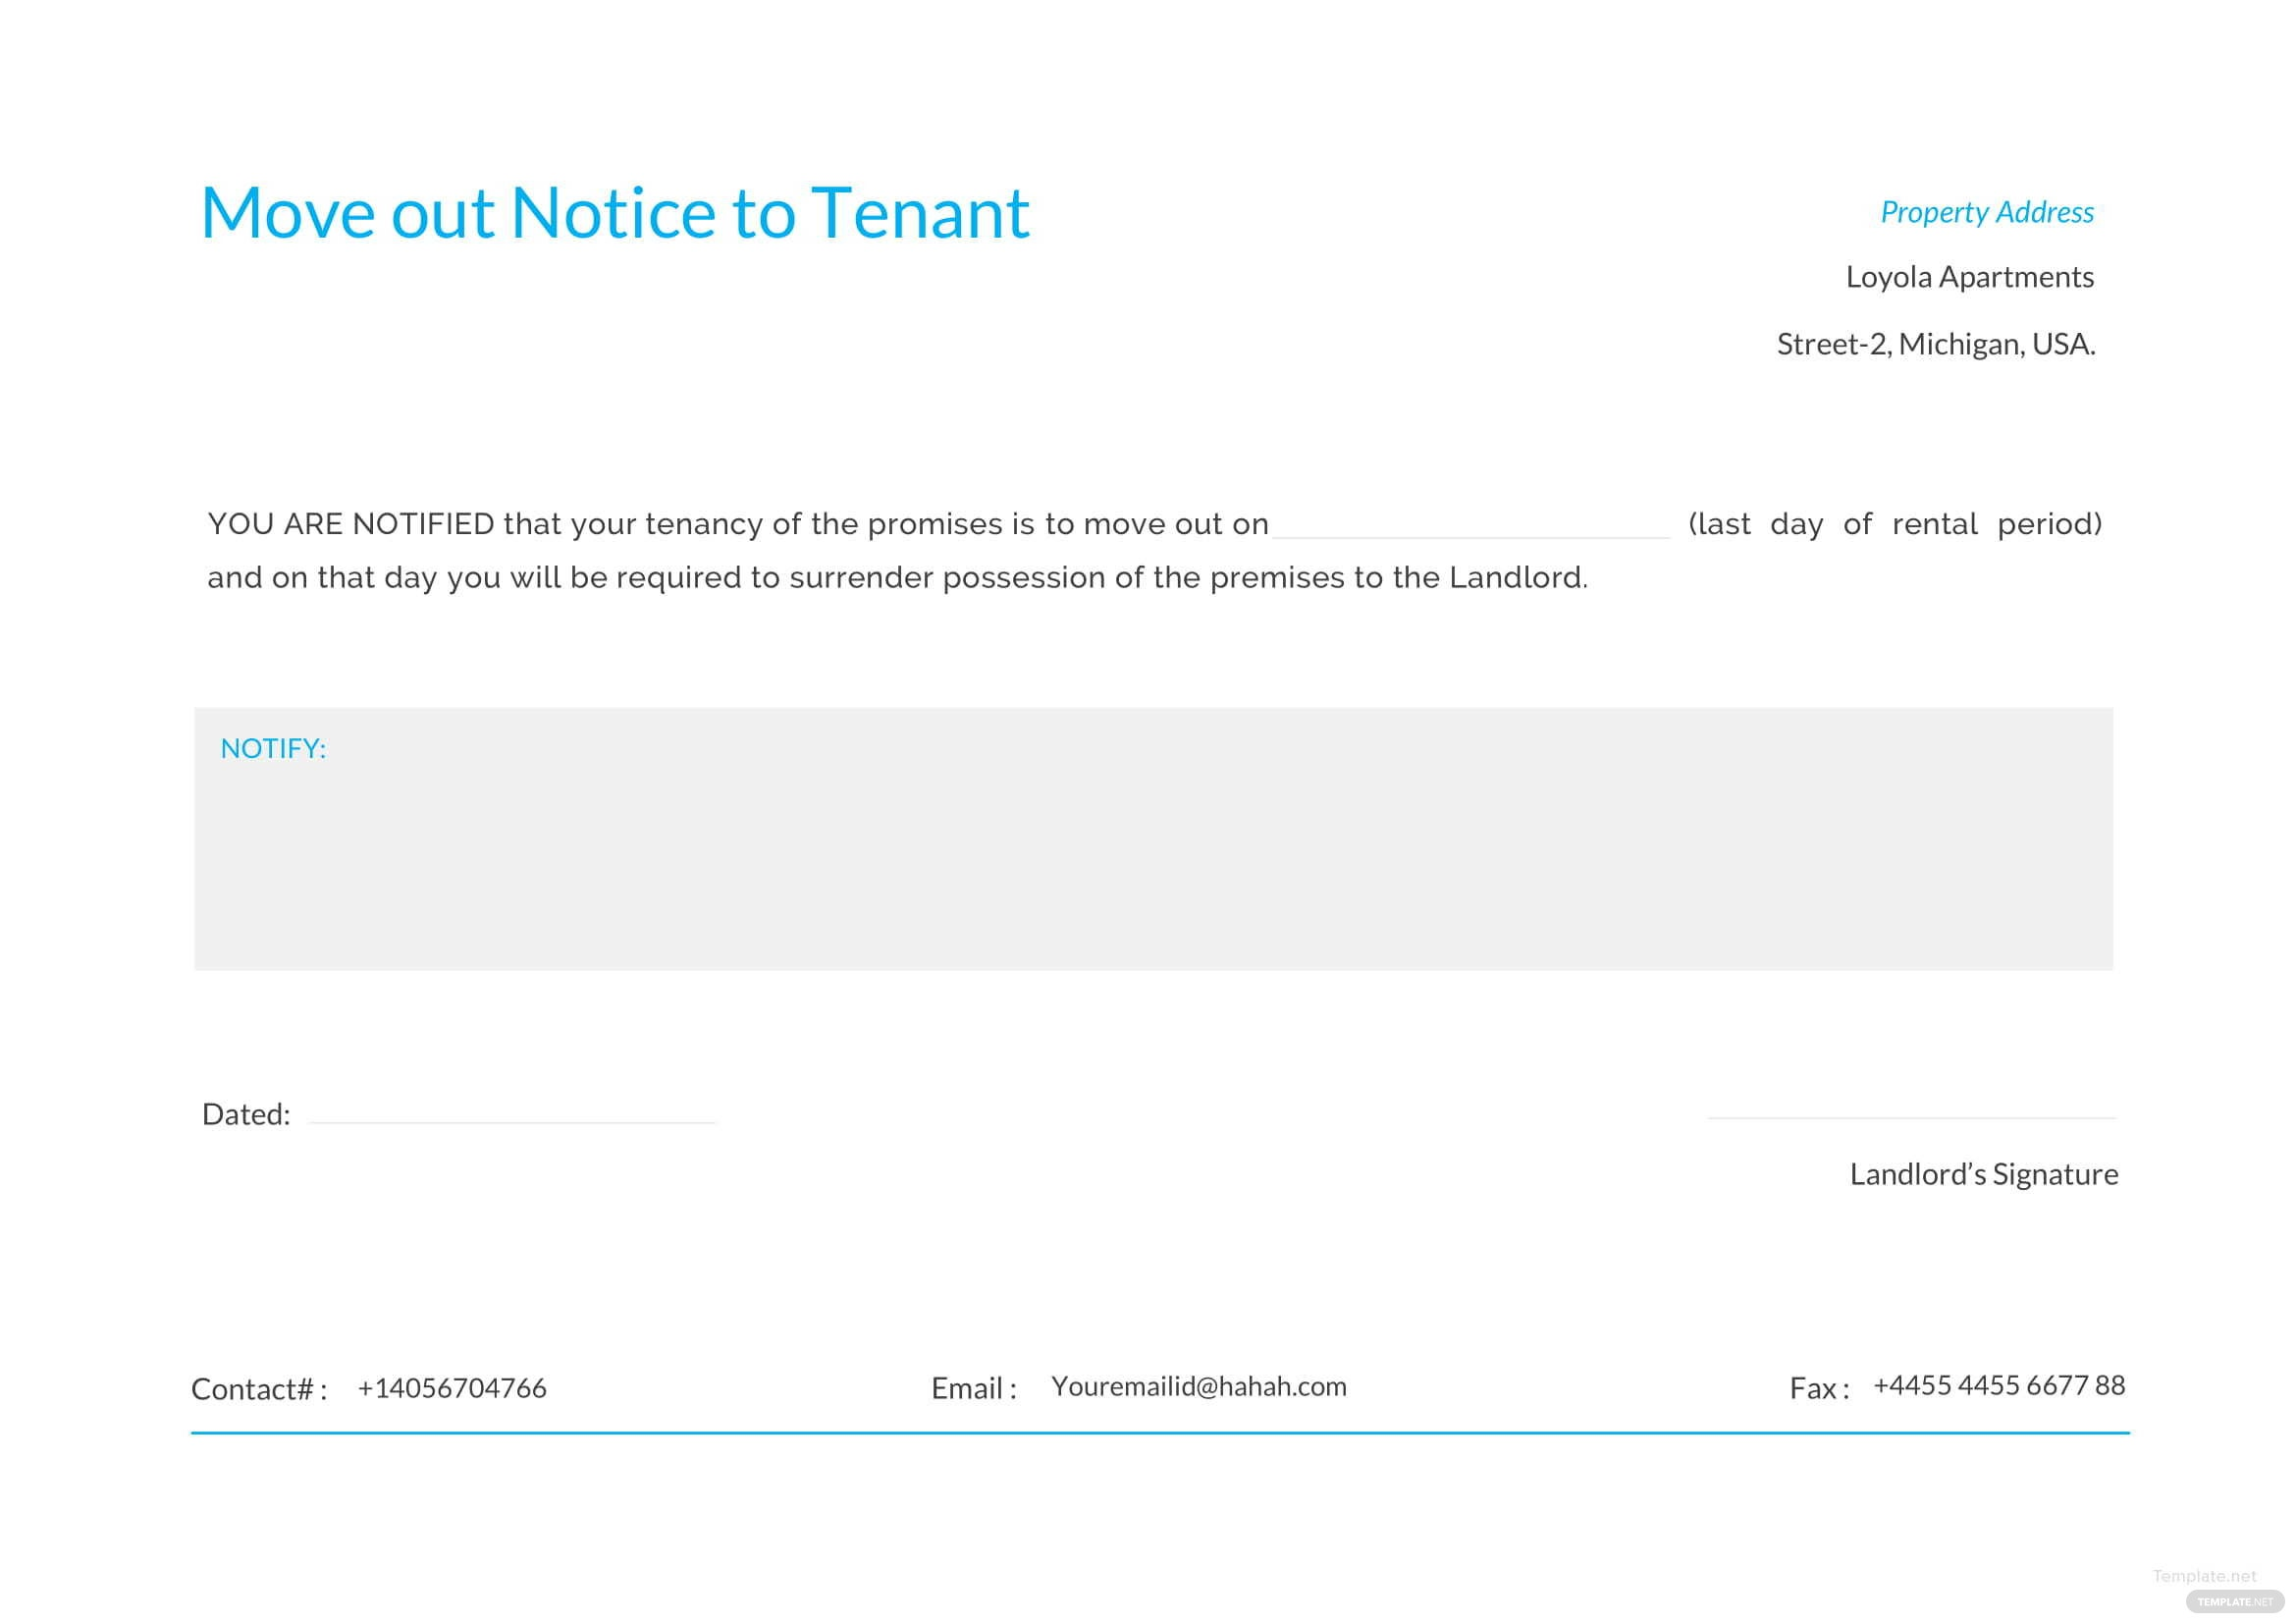 Move out notice to tenant template in microsoft word template move out notice to tenant template thecheapjerseys Gallery